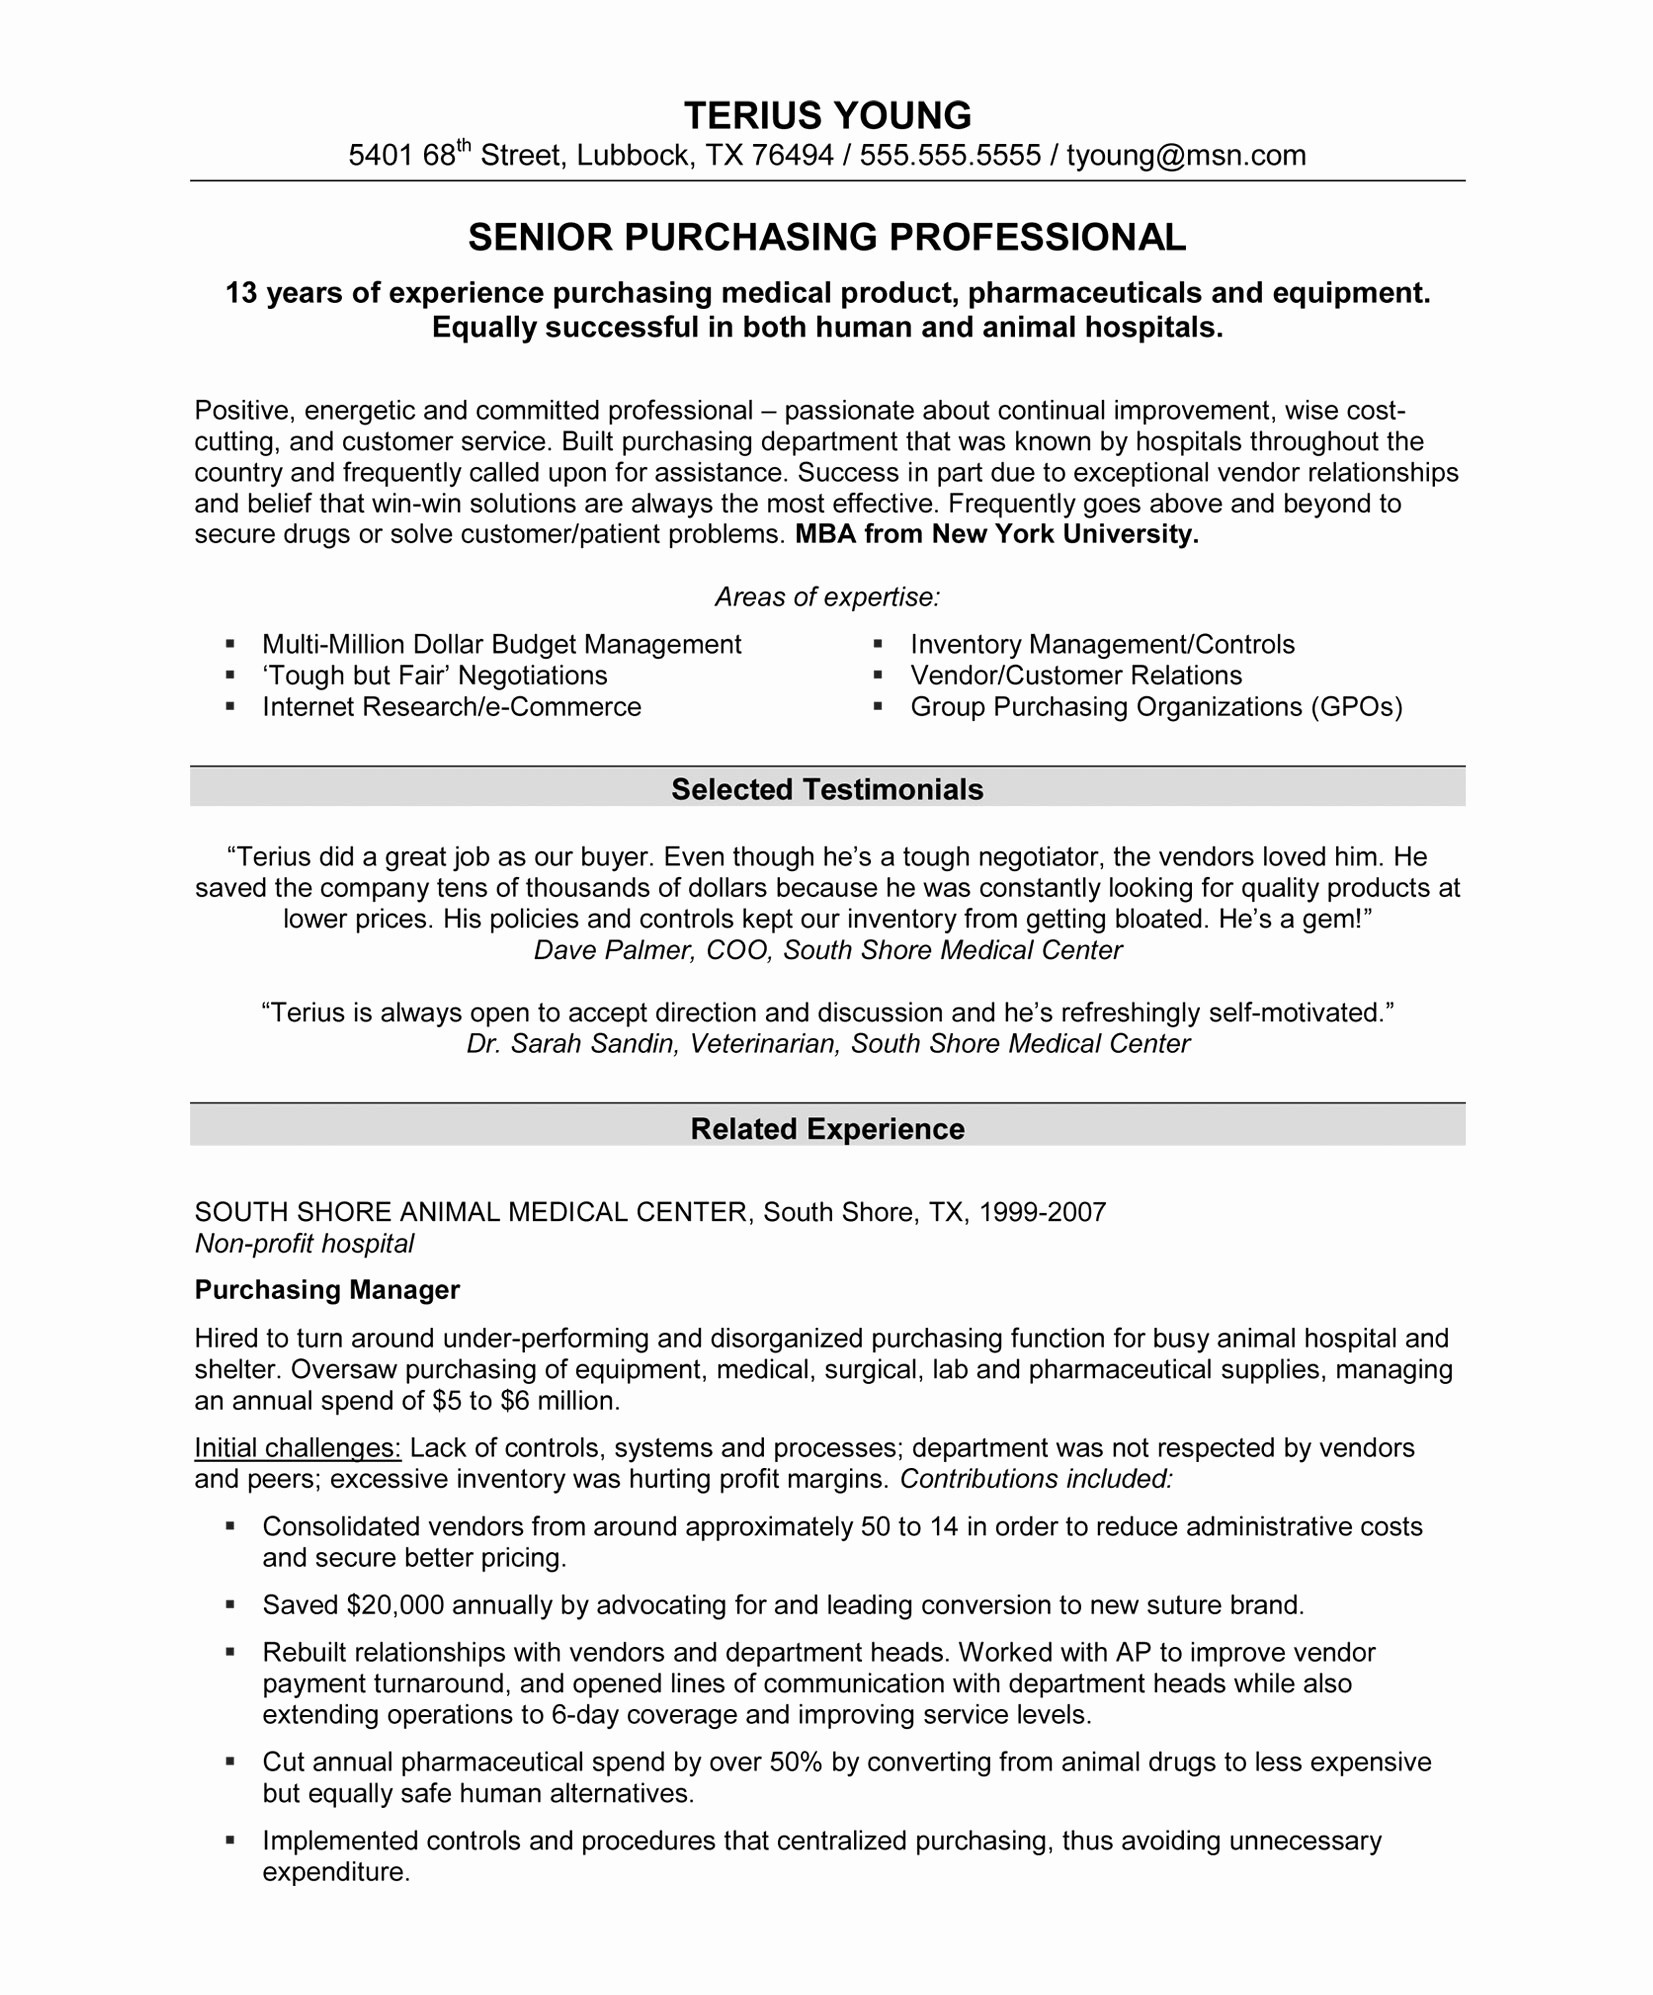 Is My Perfect Resume Safe - Free Downloads My Perfect Resume Customer Service Number